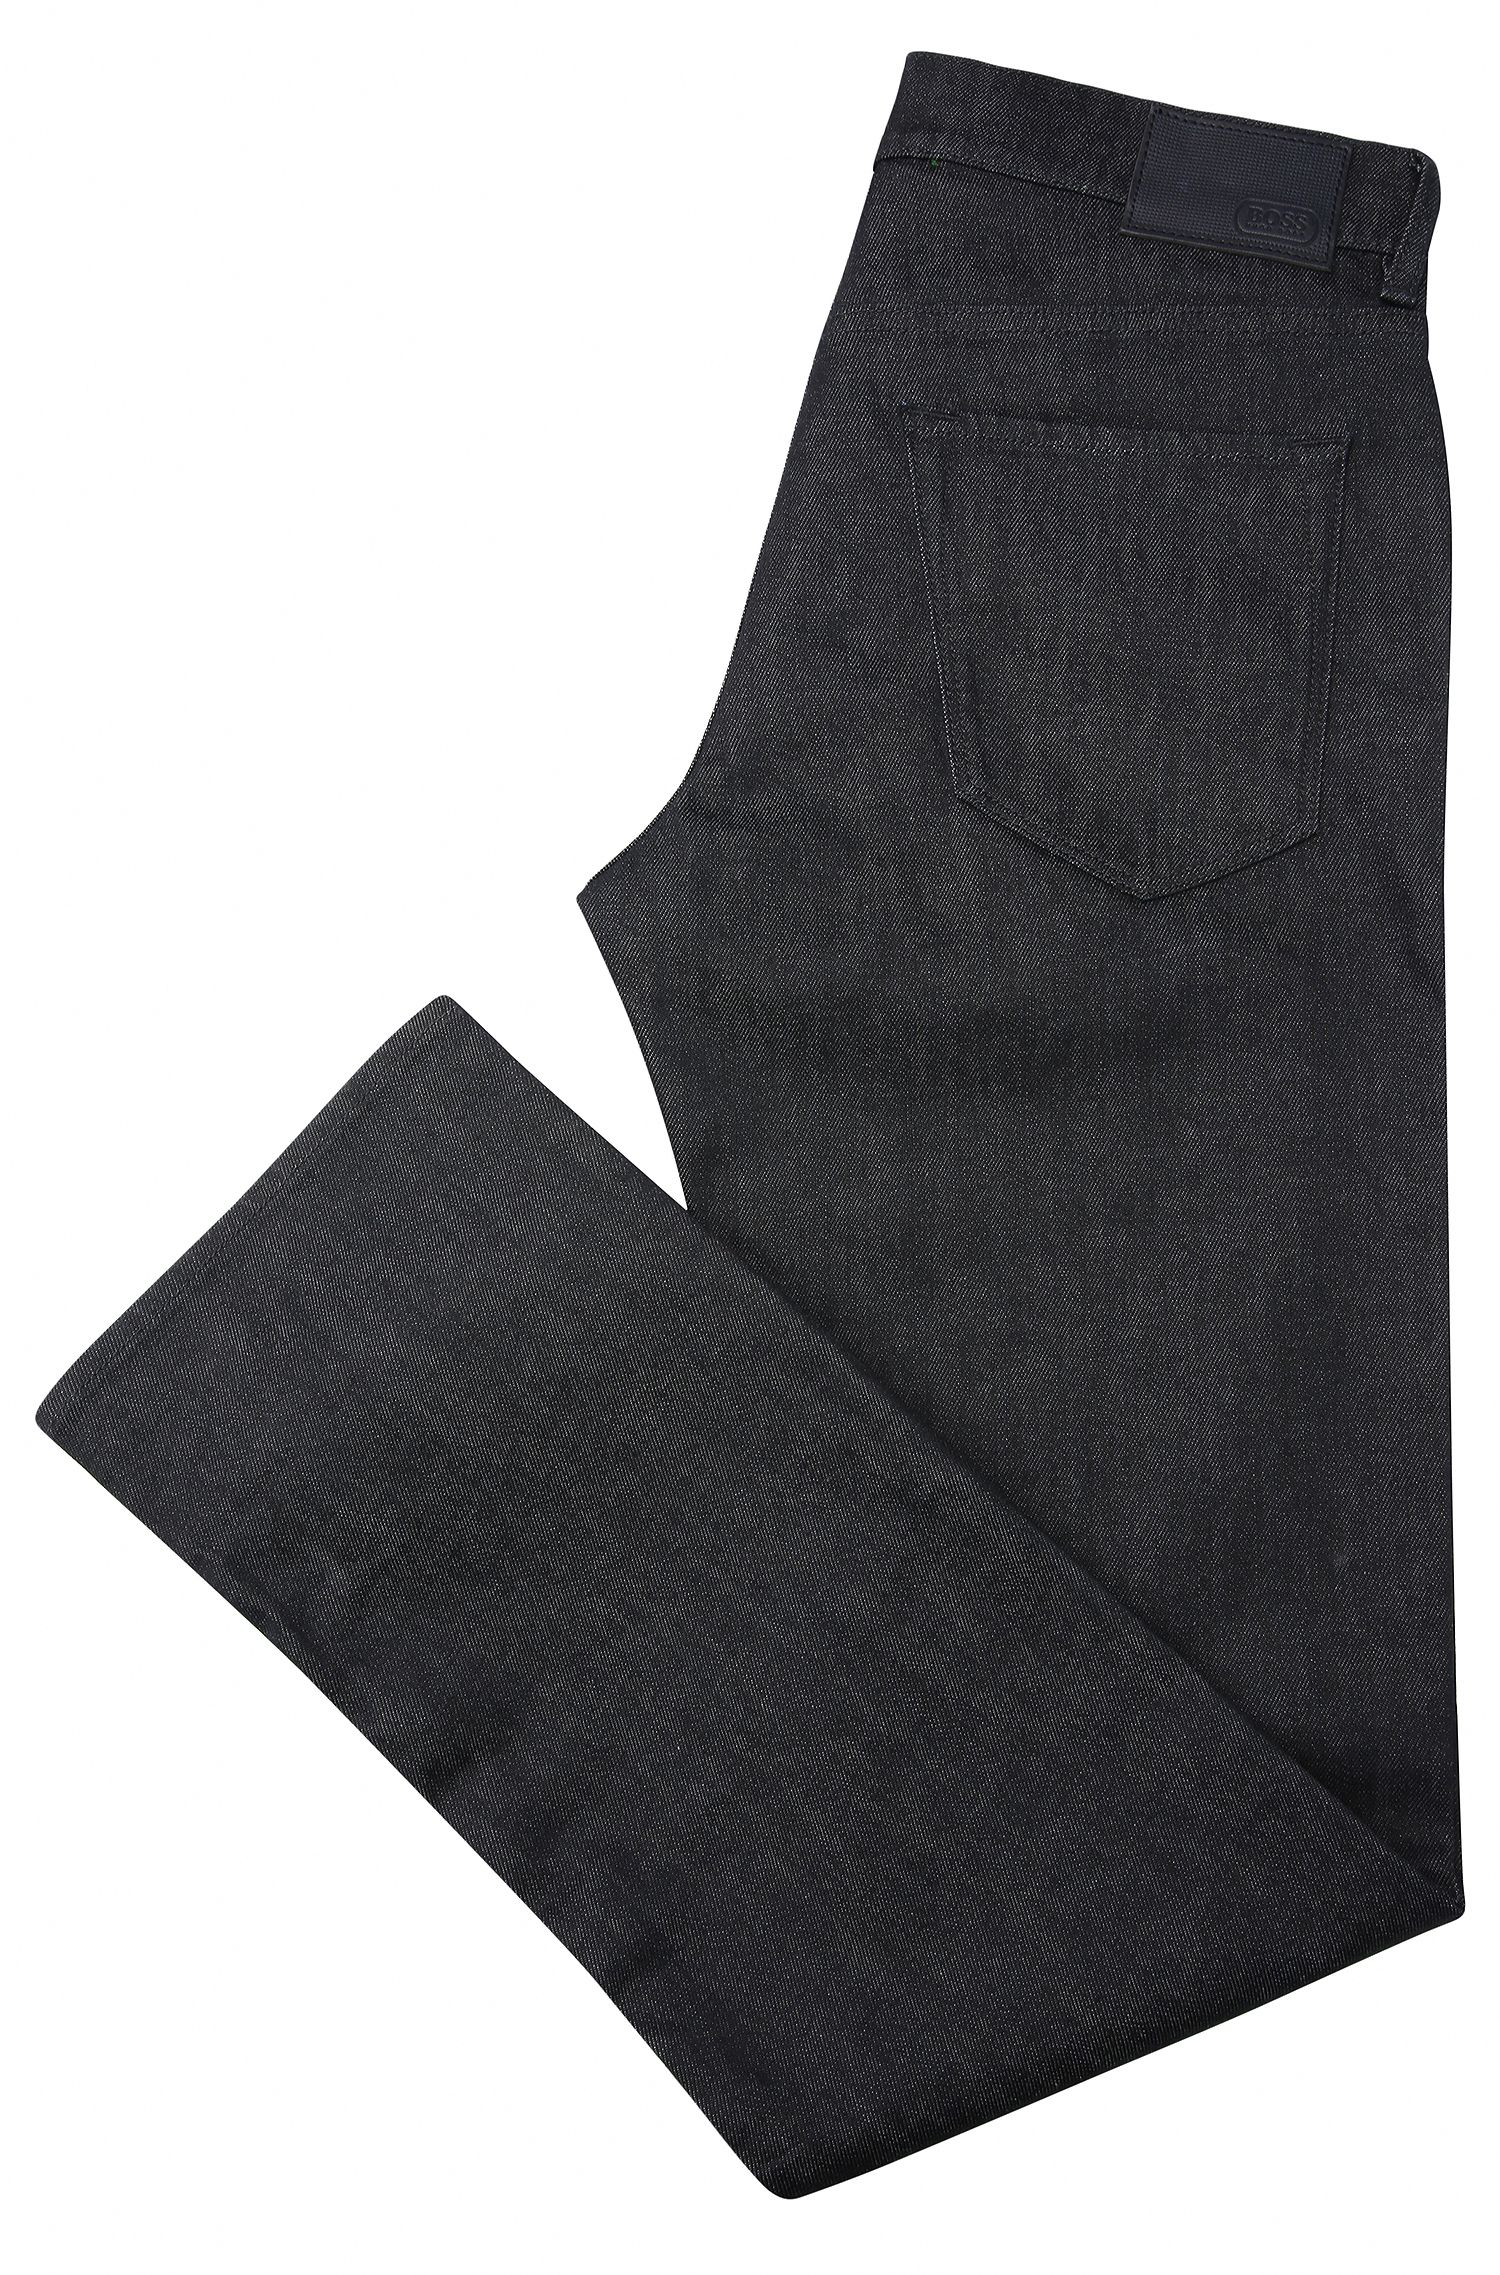 Jeans Regular Fit en coton extensible structuré : « C-MAINE1 »